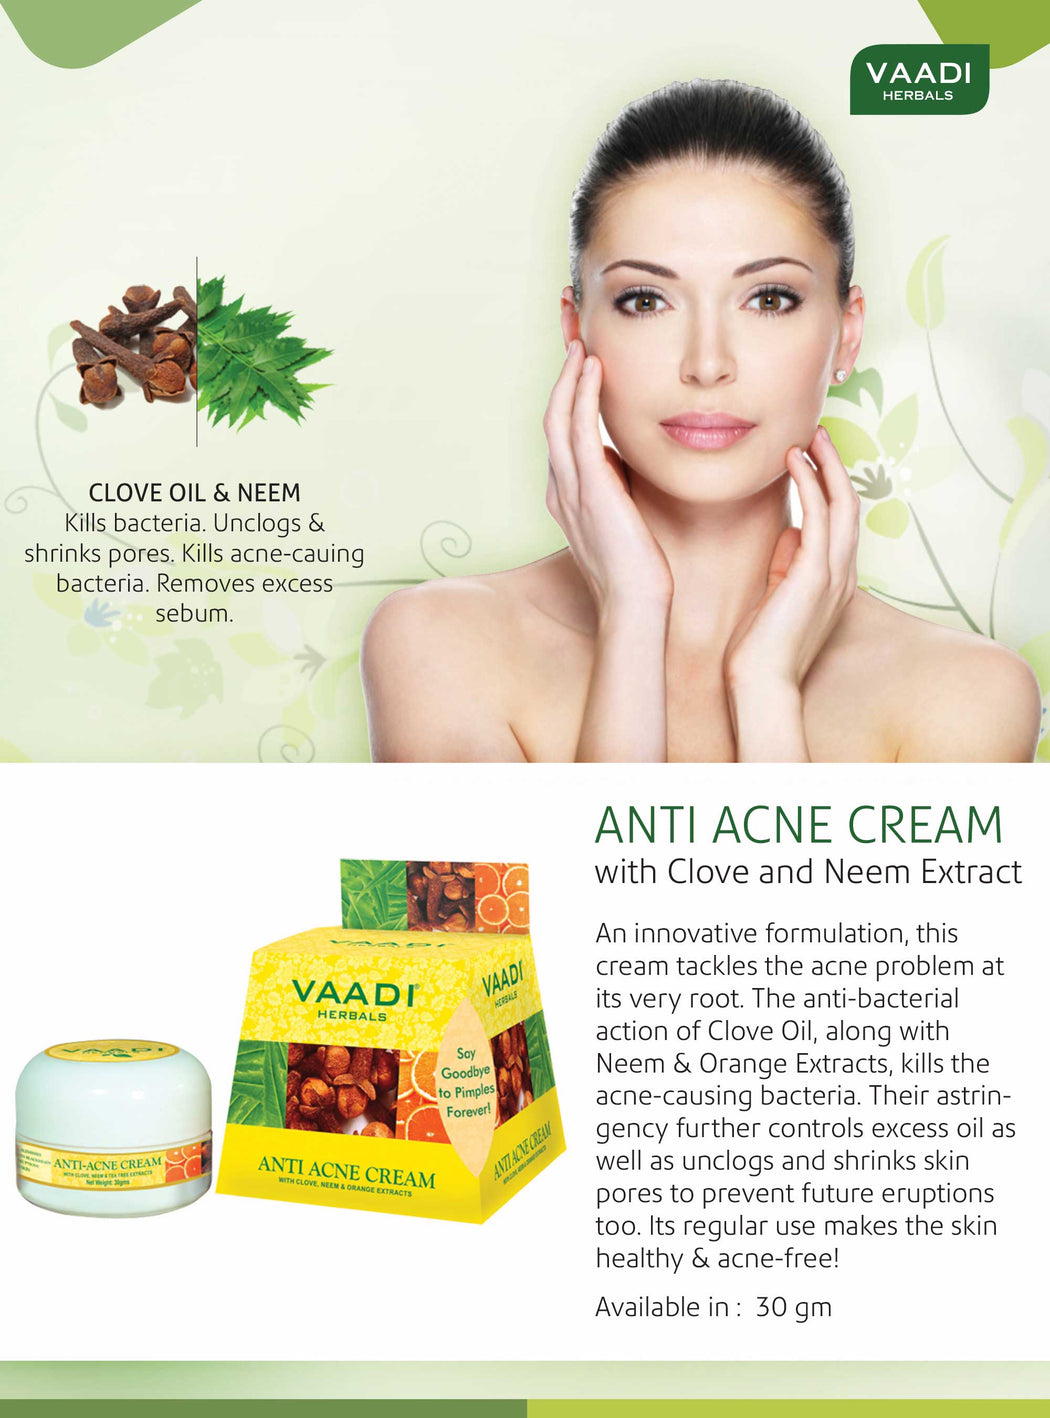 Pack of 3 Anti-Acne Cream - Clove & Neem extract (30 gms x 3)